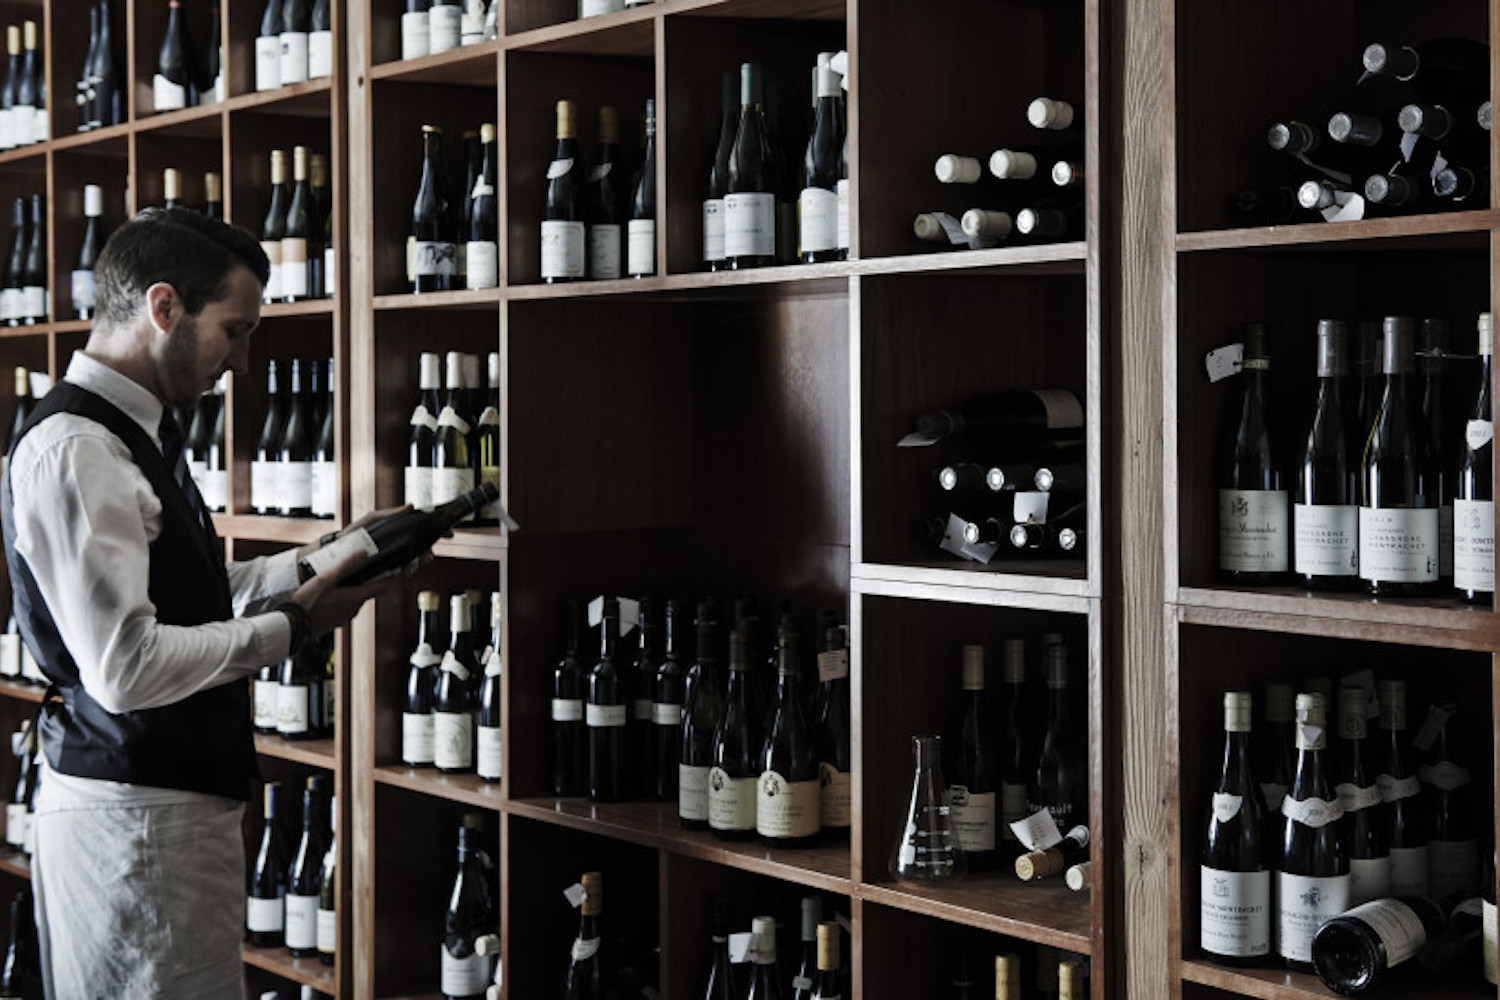 One of the unique and exclusive Australian experiences is visiting the cellar at the Lake House, Daylesford